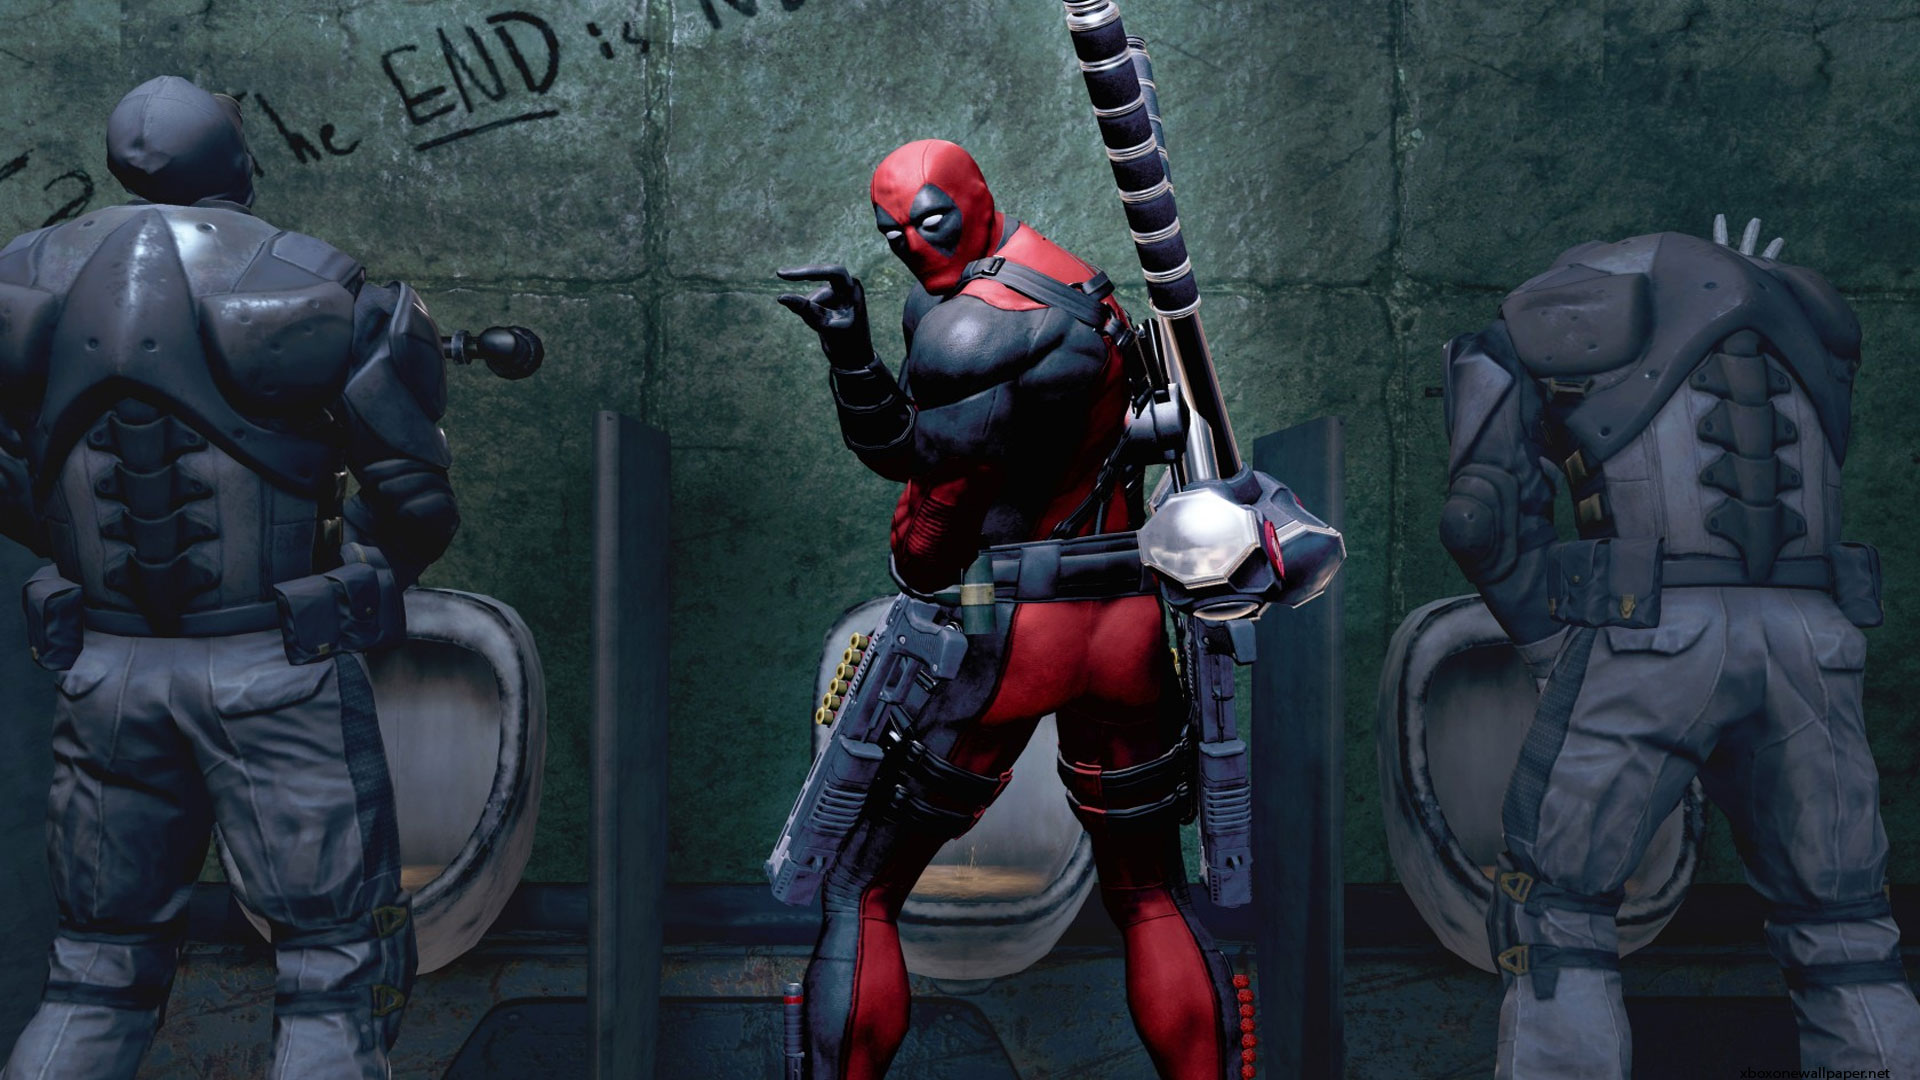 Marvel Deadpool The Game Wallpaper Photo HD Wallpaper 1080p 1920x1080